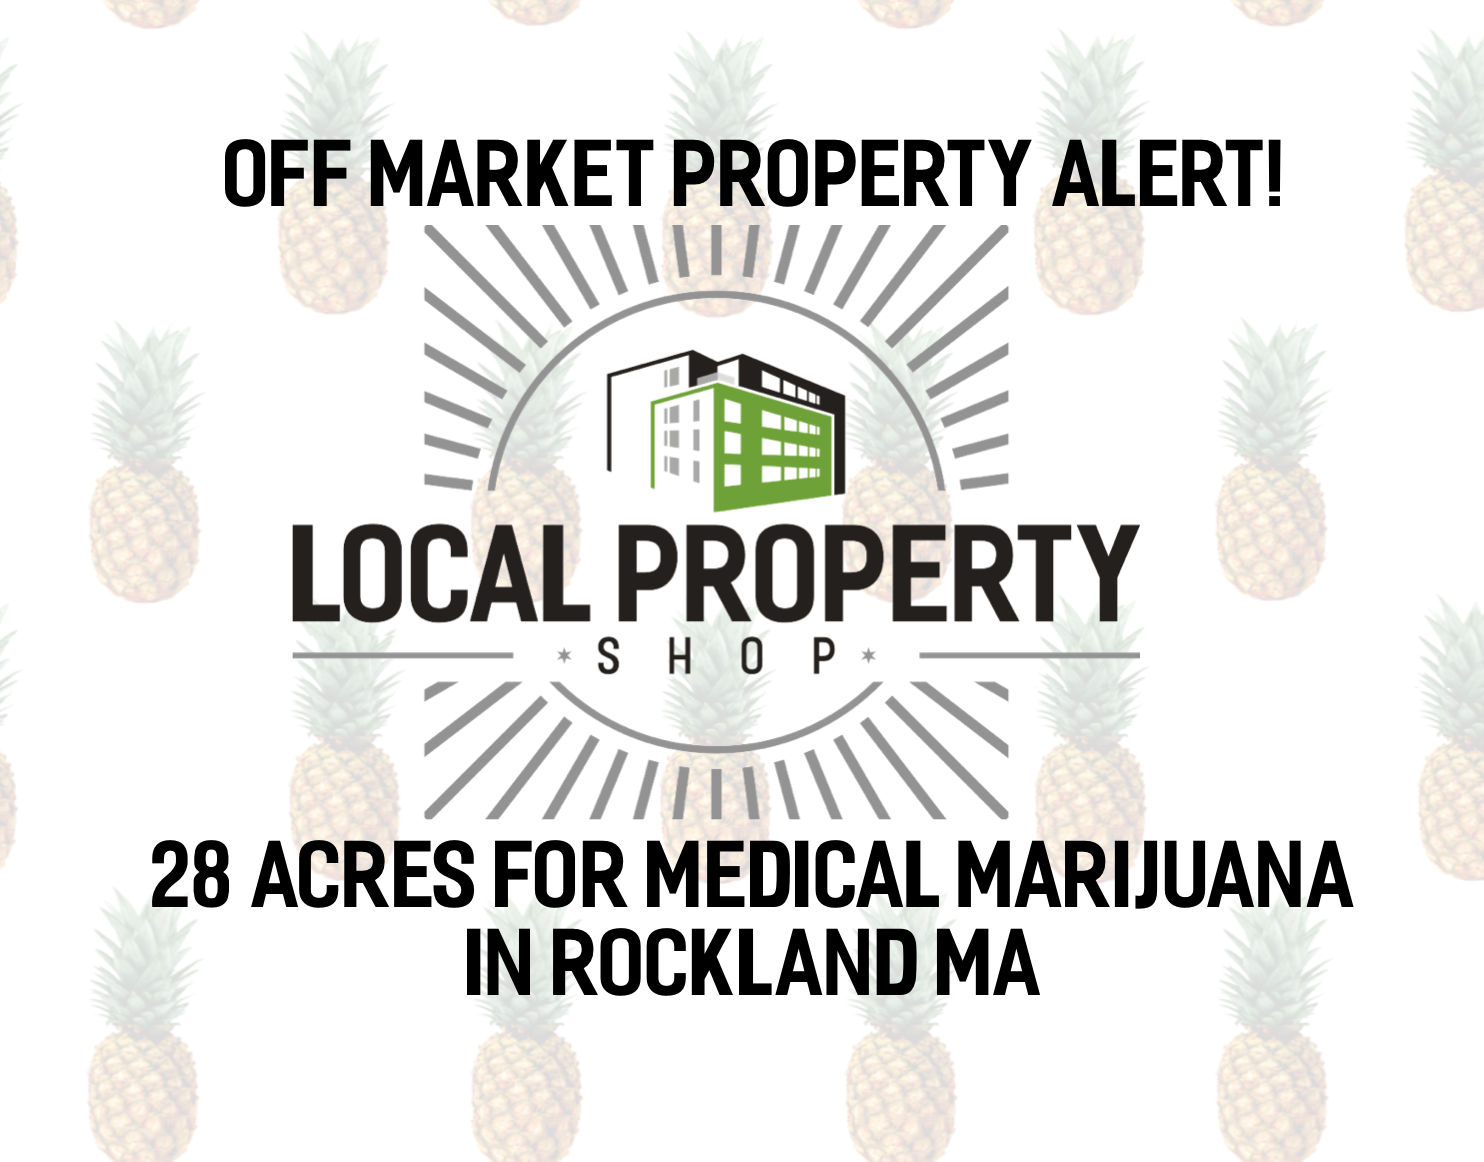 Off Market Land: 28 Acres Permitted for Medical Marijuana Use in Rockland MA